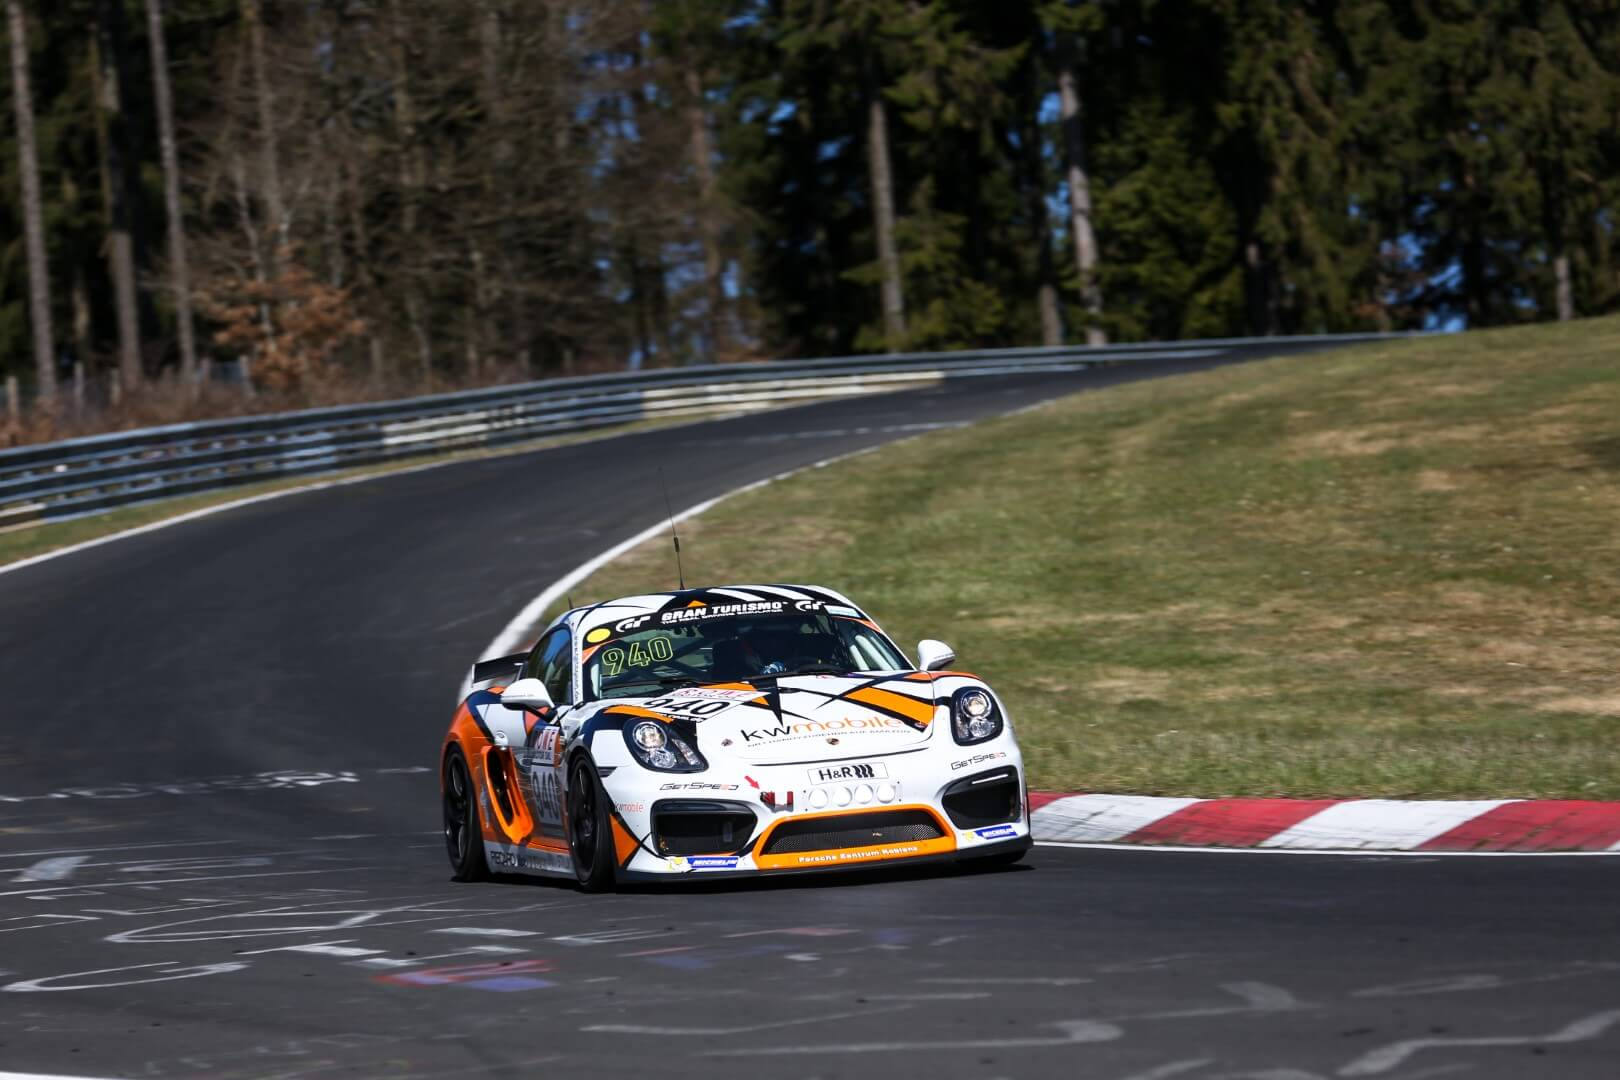 VLN 1. Lauf 2018, Nürburgring-Nordschleife - Foto: Gruppe C Photography; #940 Porsche Cayman GT4, GIGASPEED Team GetSpeed Performance: 'Max', 'Jens'